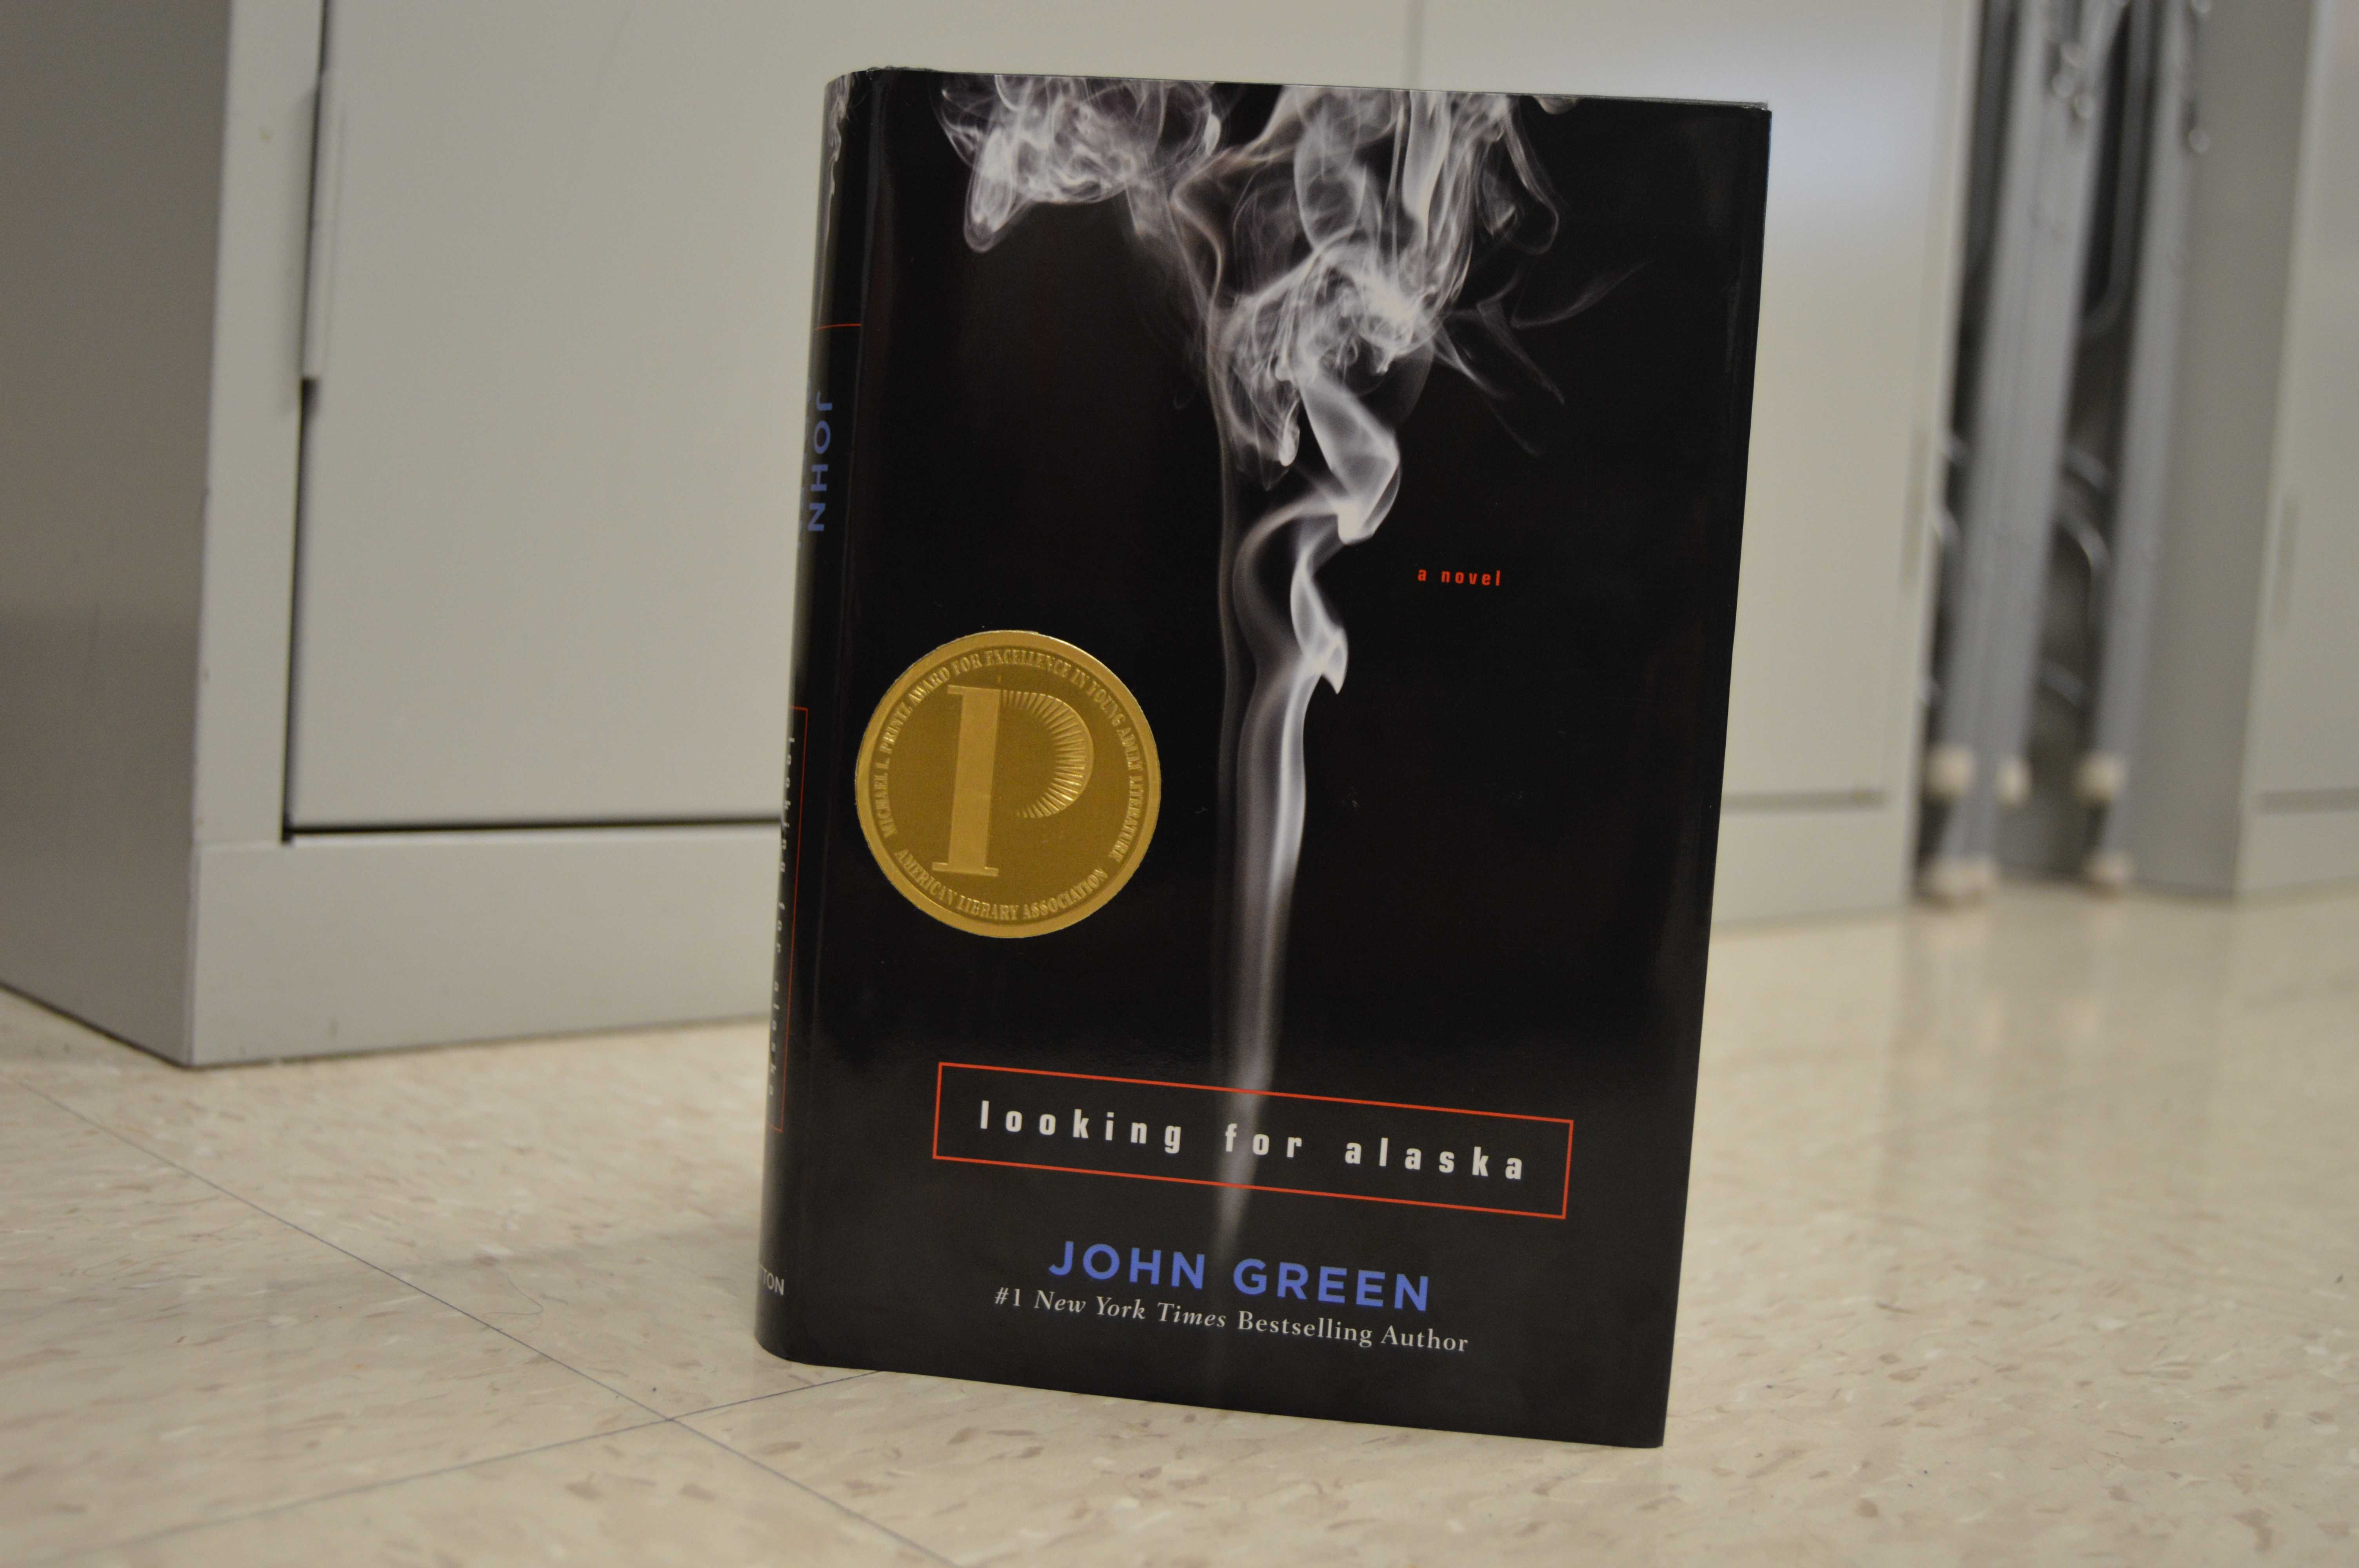 Banned book review: Looking for Alaska